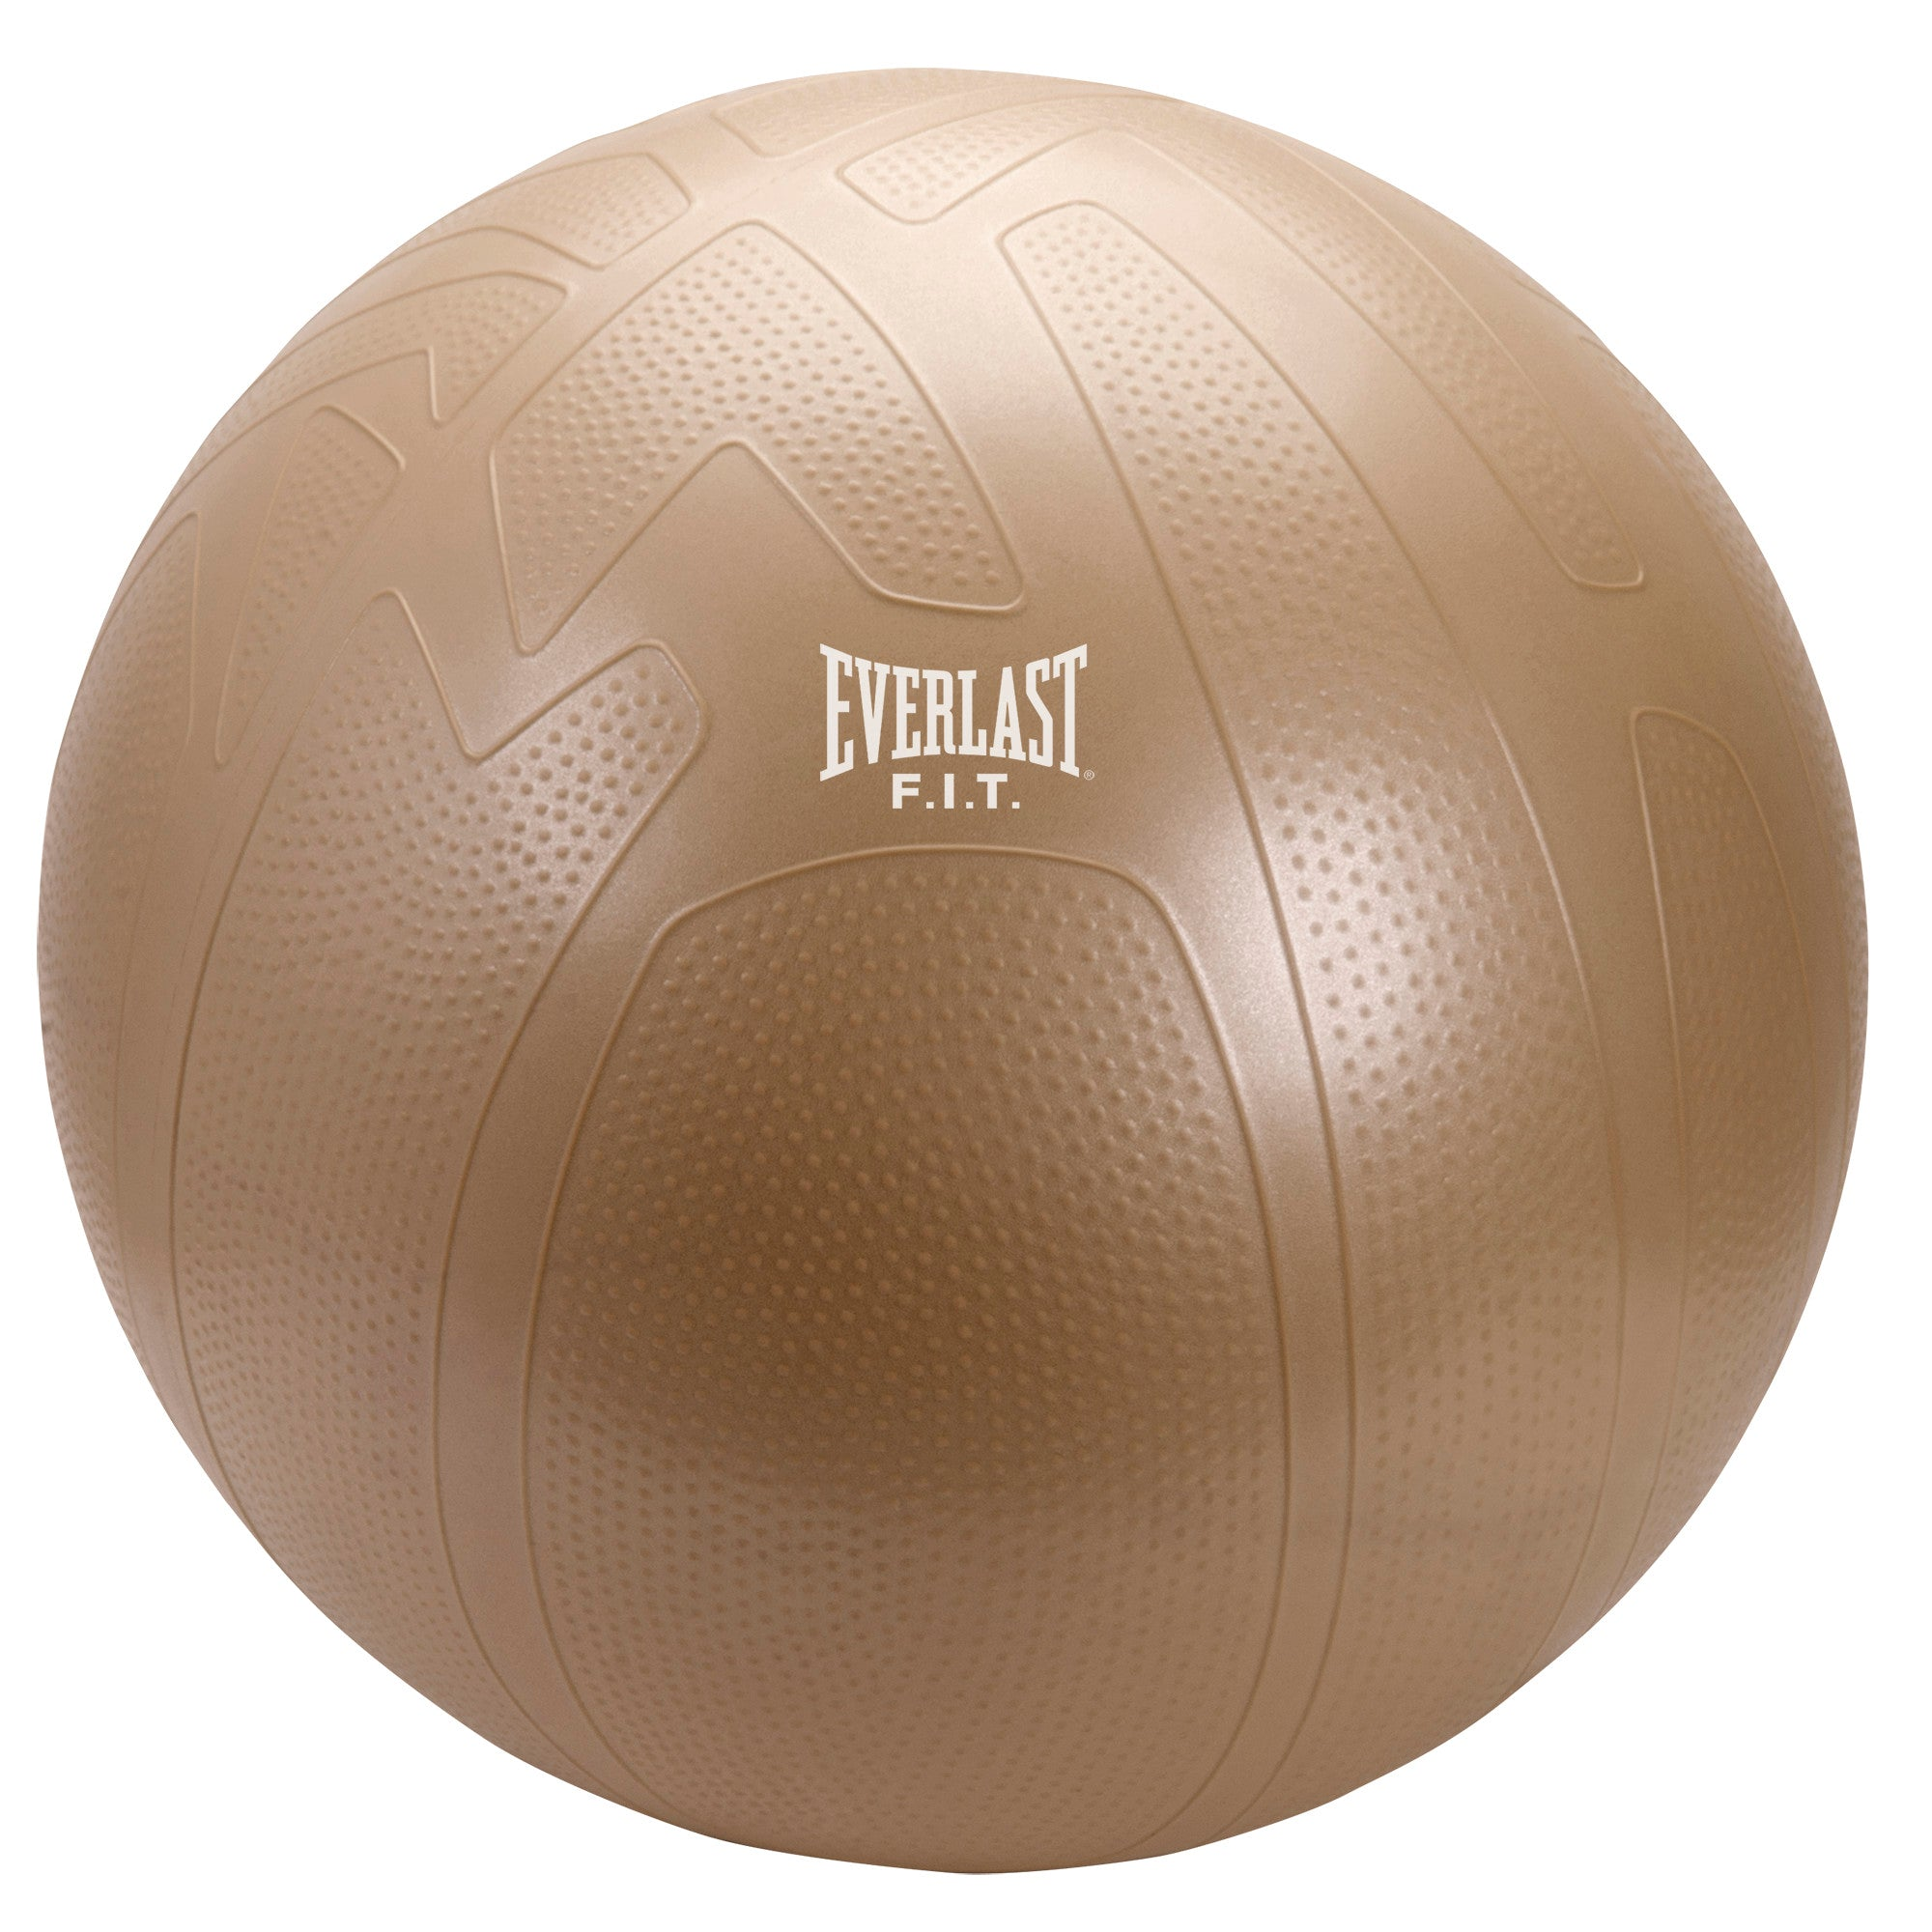 Everlast 65cm Pro Grip Fitness Ball by Everlast Canada